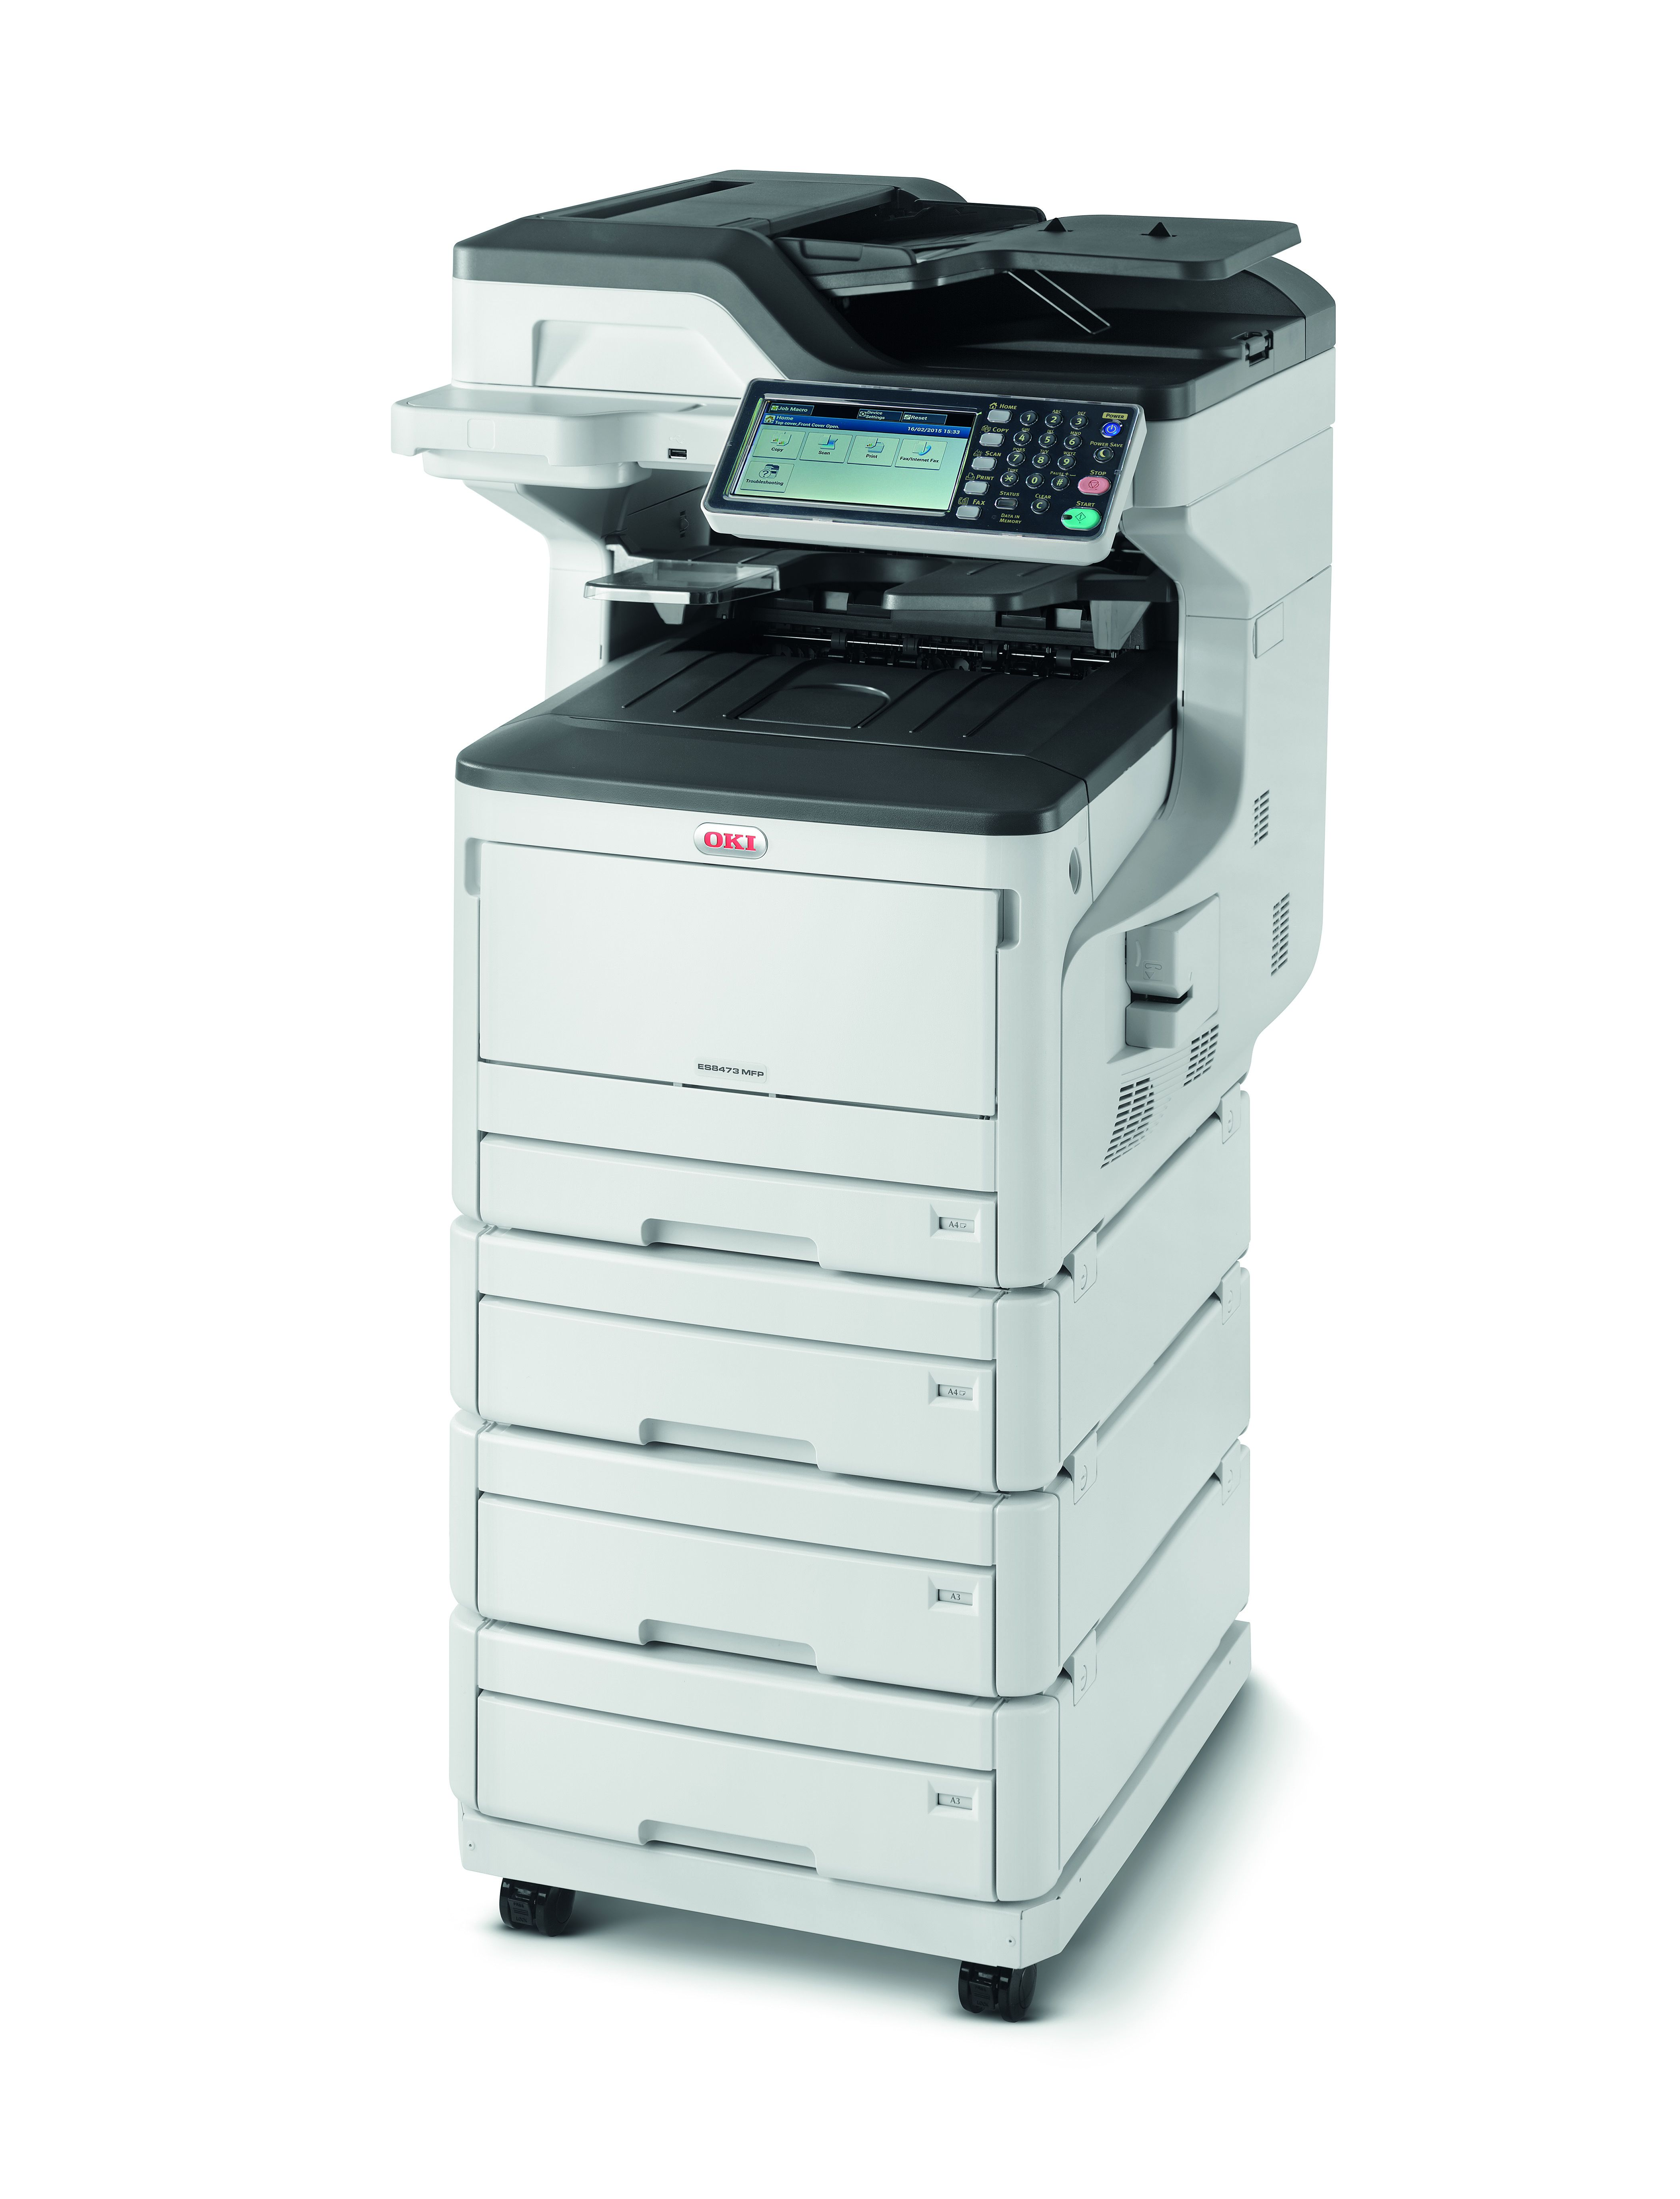 ES8473MFP 34 with 2nd 3rd 4th Tray Casterbase